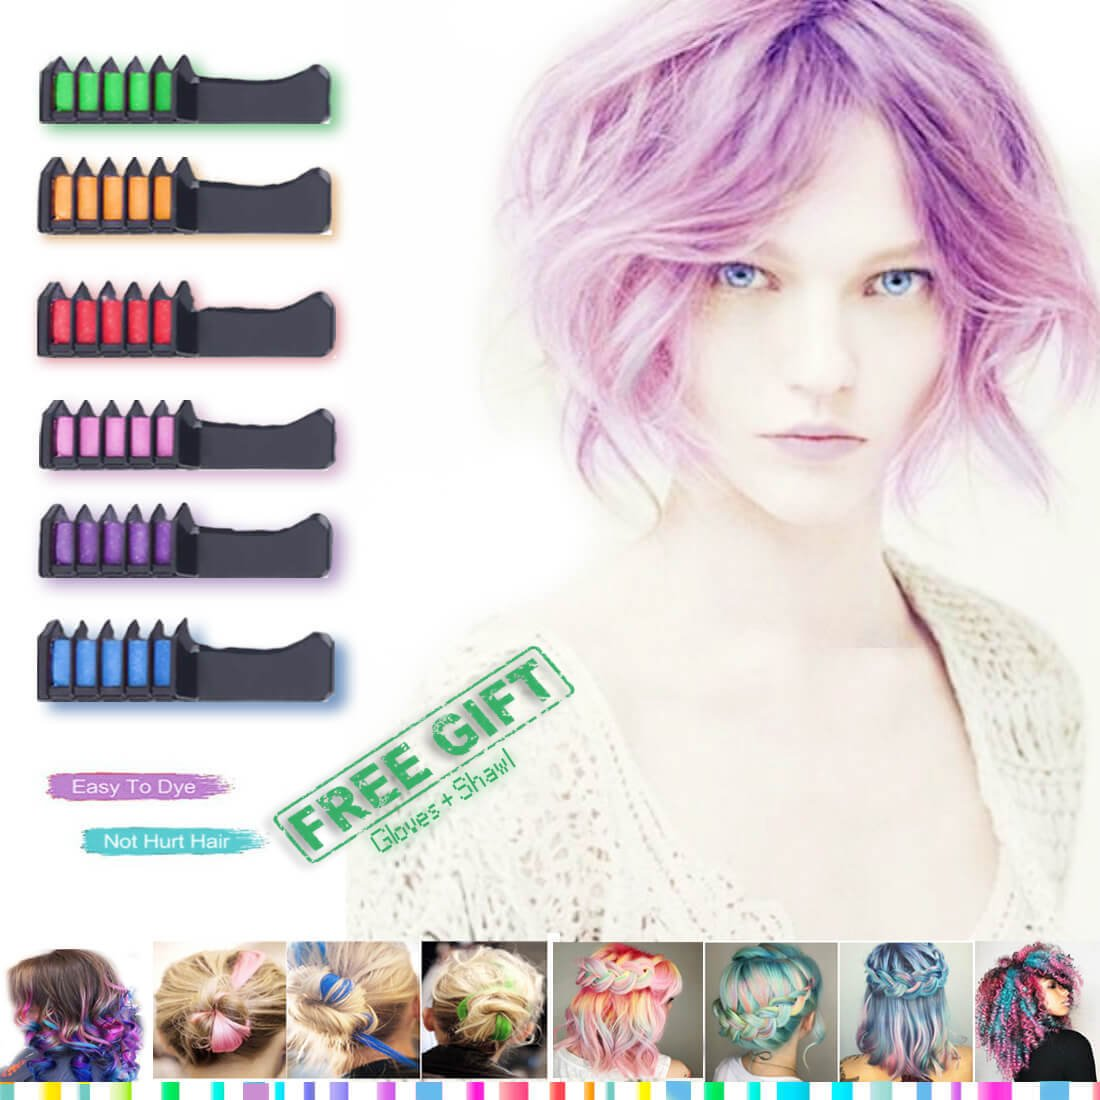 Hair Chalk - Temporary Bright Hair Chalk Colors - CandyHair Comb For Hair Chalk Salon – Washable Hair Colors For Kids, For Girl - Hair Dyeing Party and Cosplay Diy – Suitable For Dark Brown Hair